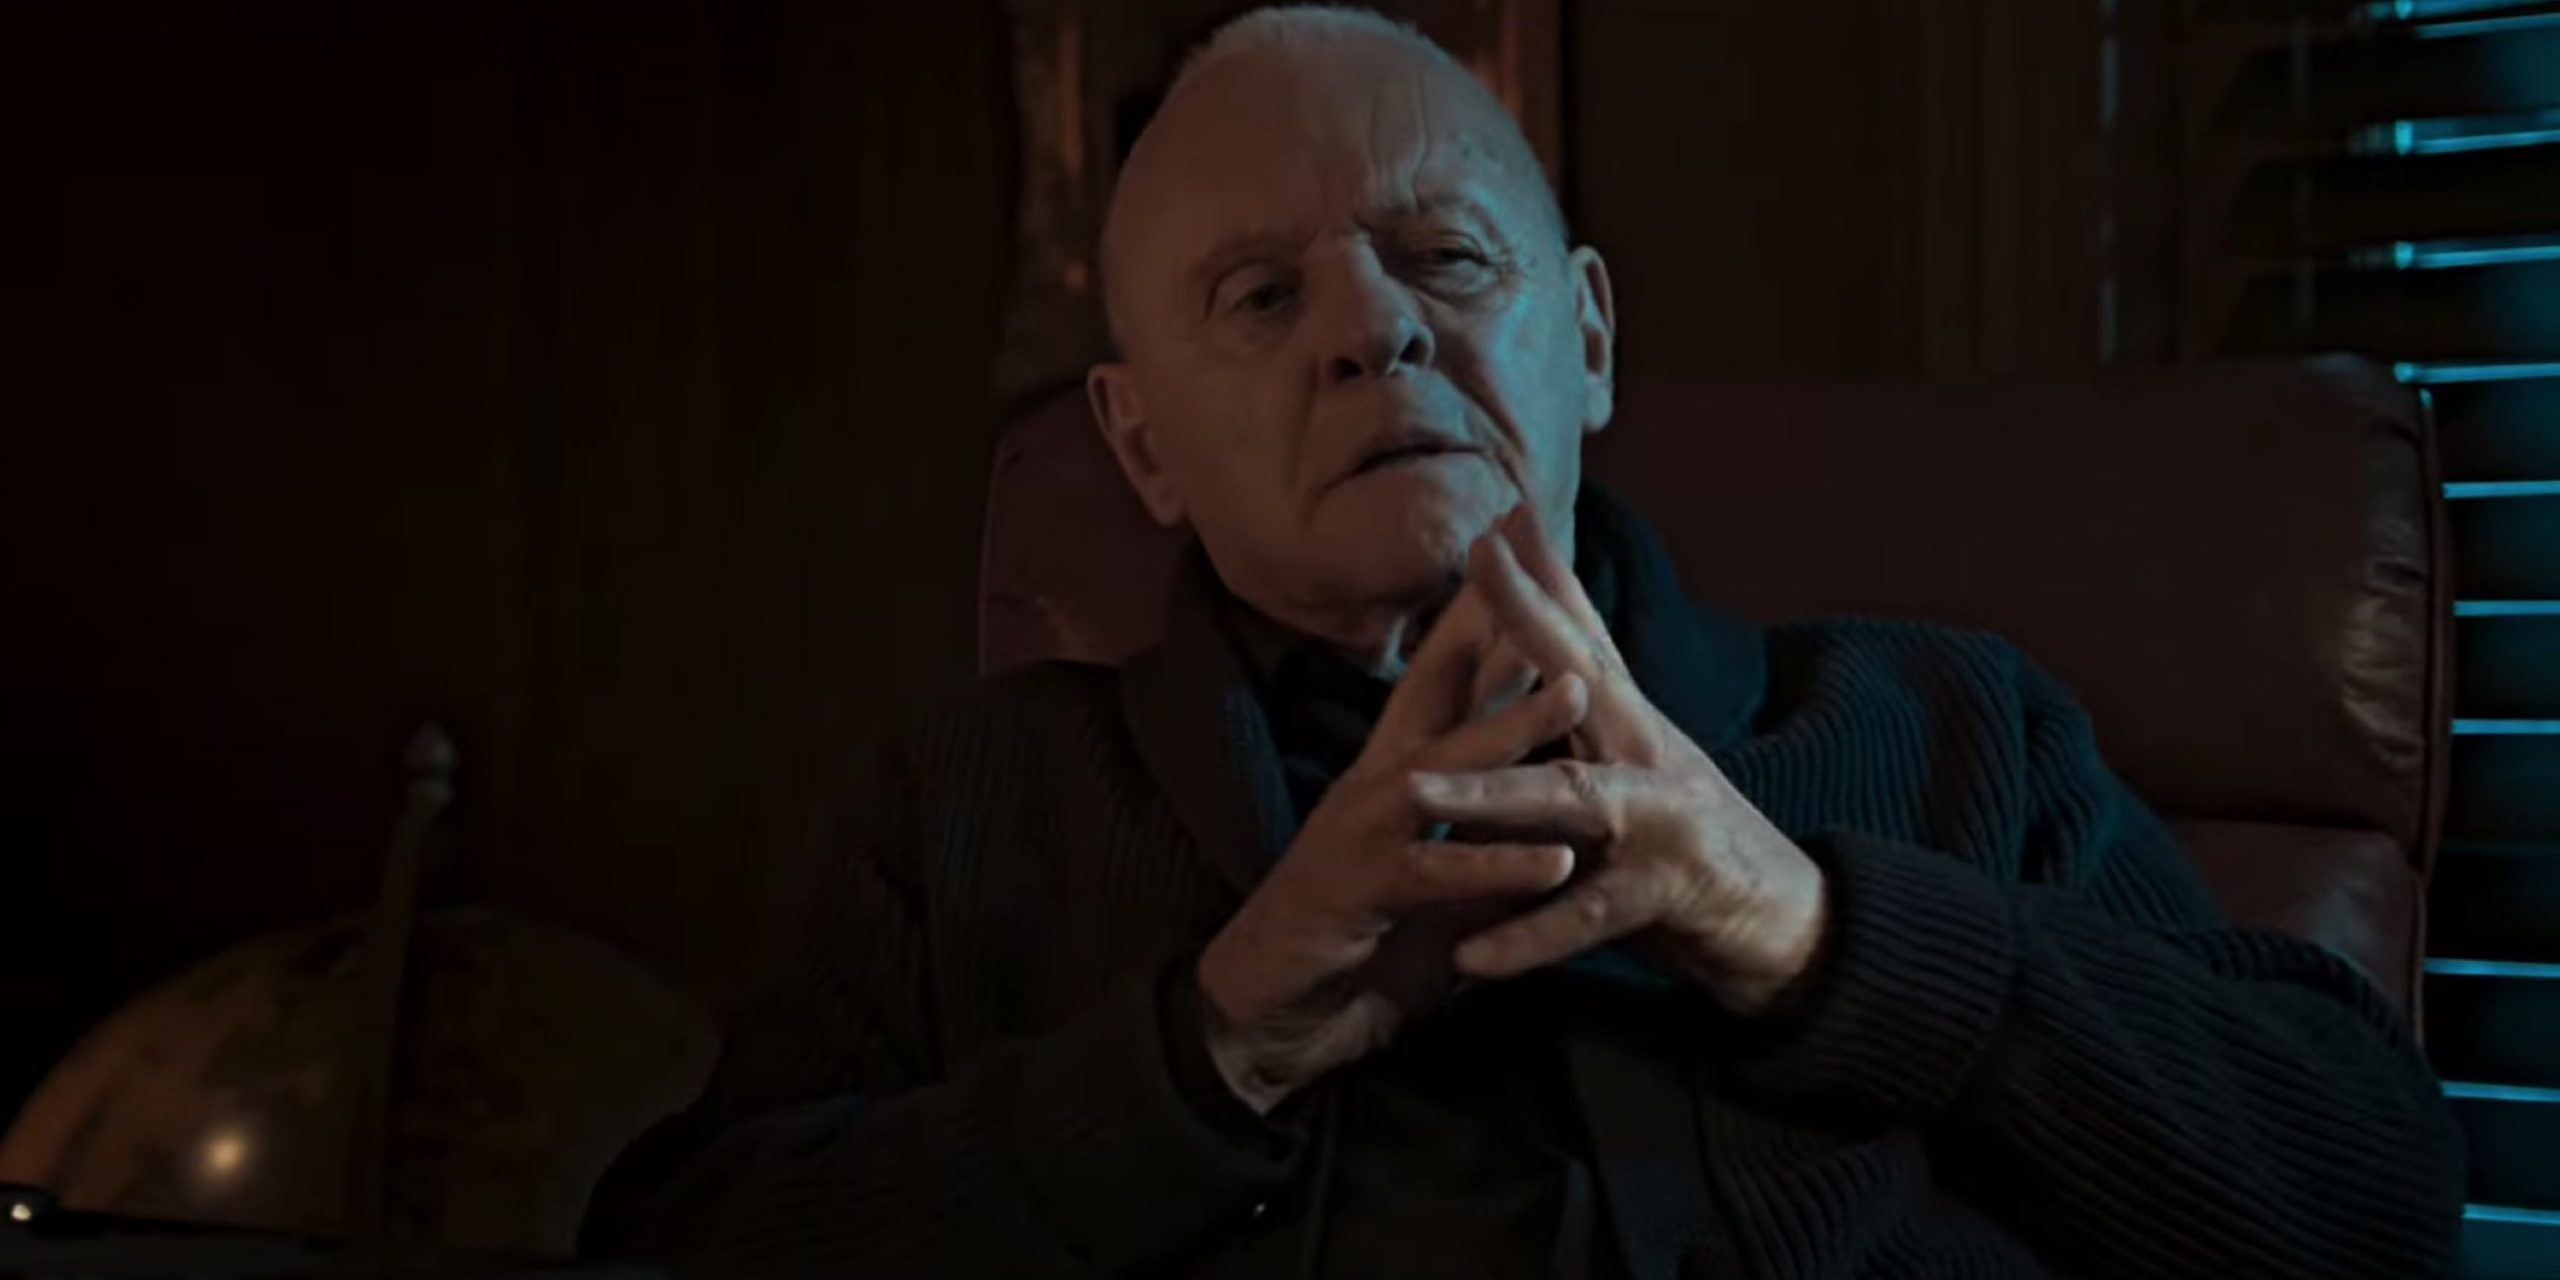 Anthony Hopkins Plays the Villain in New Trailer for The Virtuoso